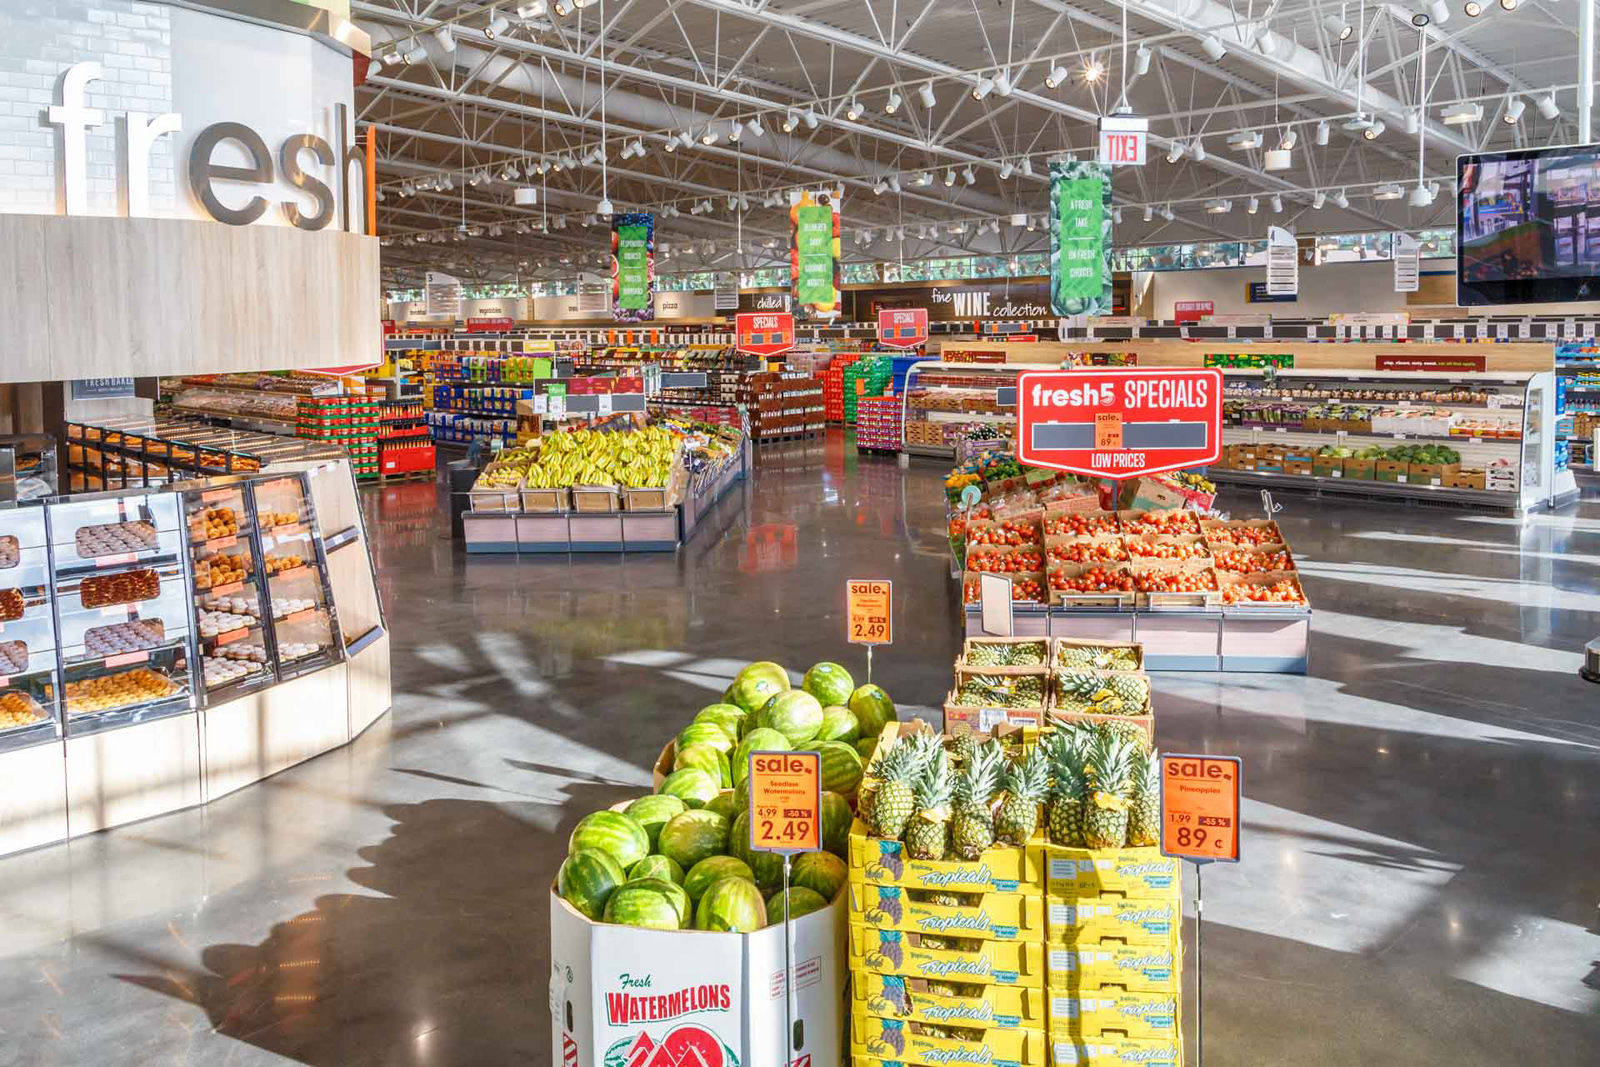 Lidl has two other D.C. area stores in Manassas and Woodbridge. (Courtesy Lidl)